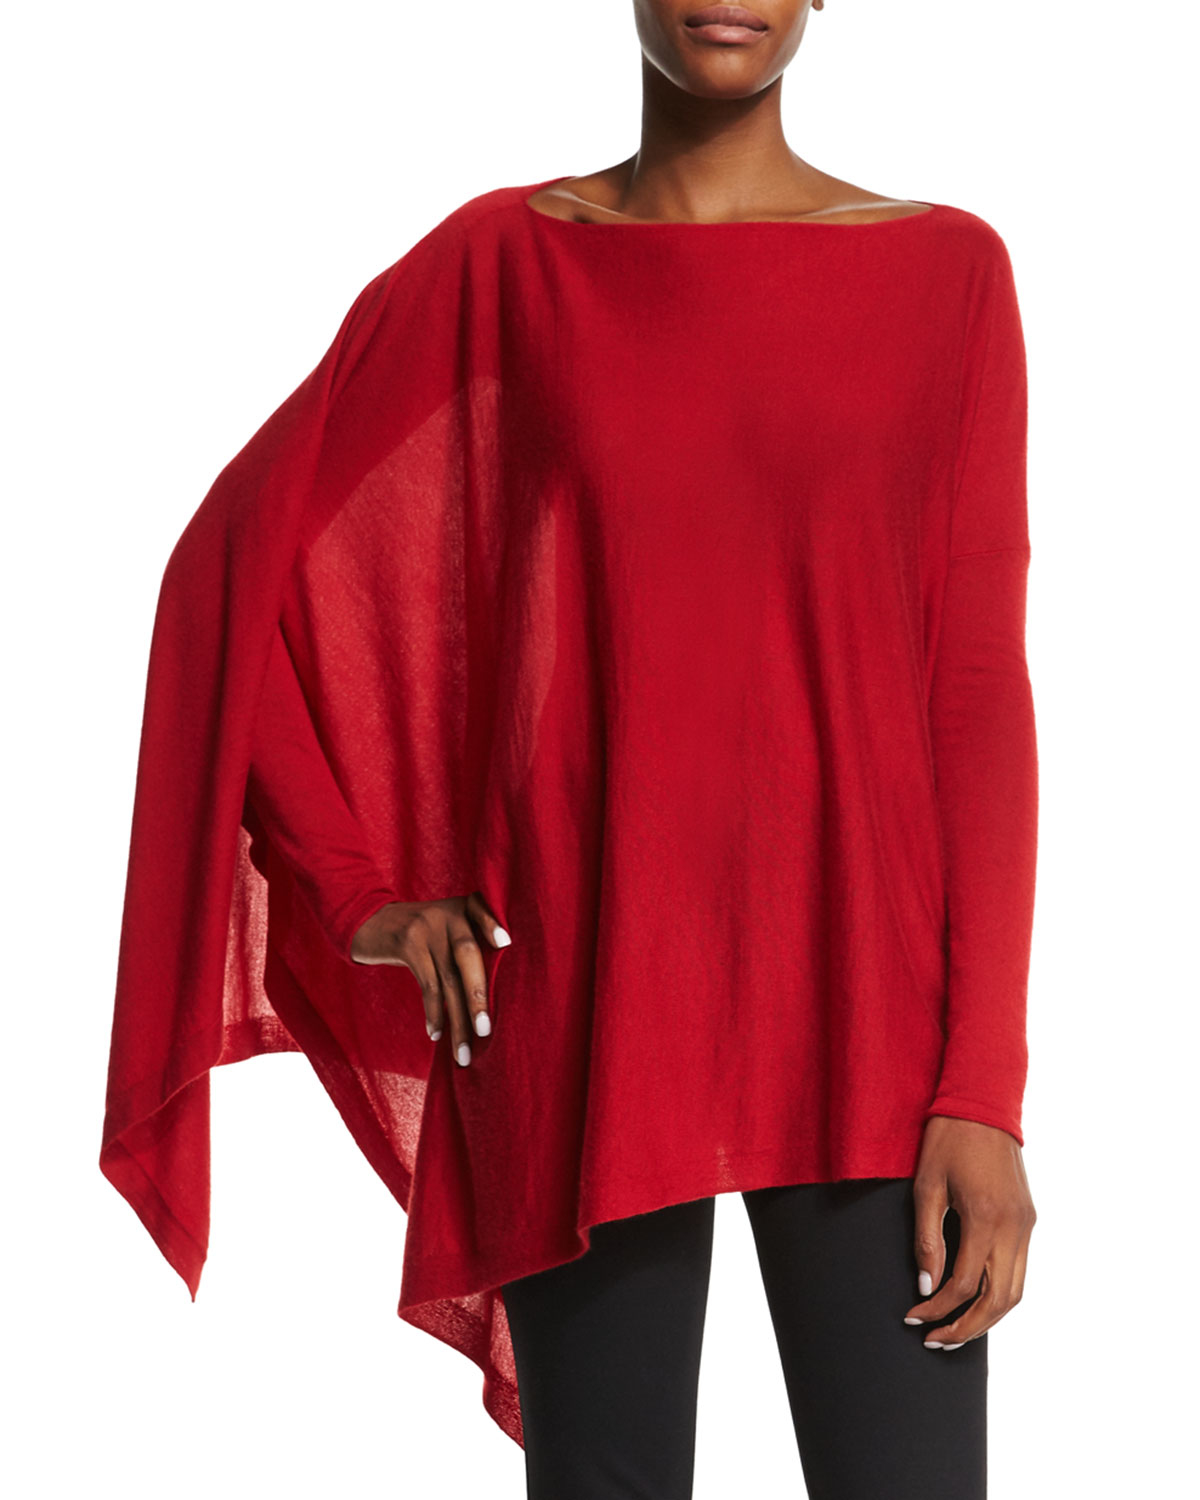 donna karan asymmetric cashmere poncho top in red lyst. Black Bedroom Furniture Sets. Home Design Ideas